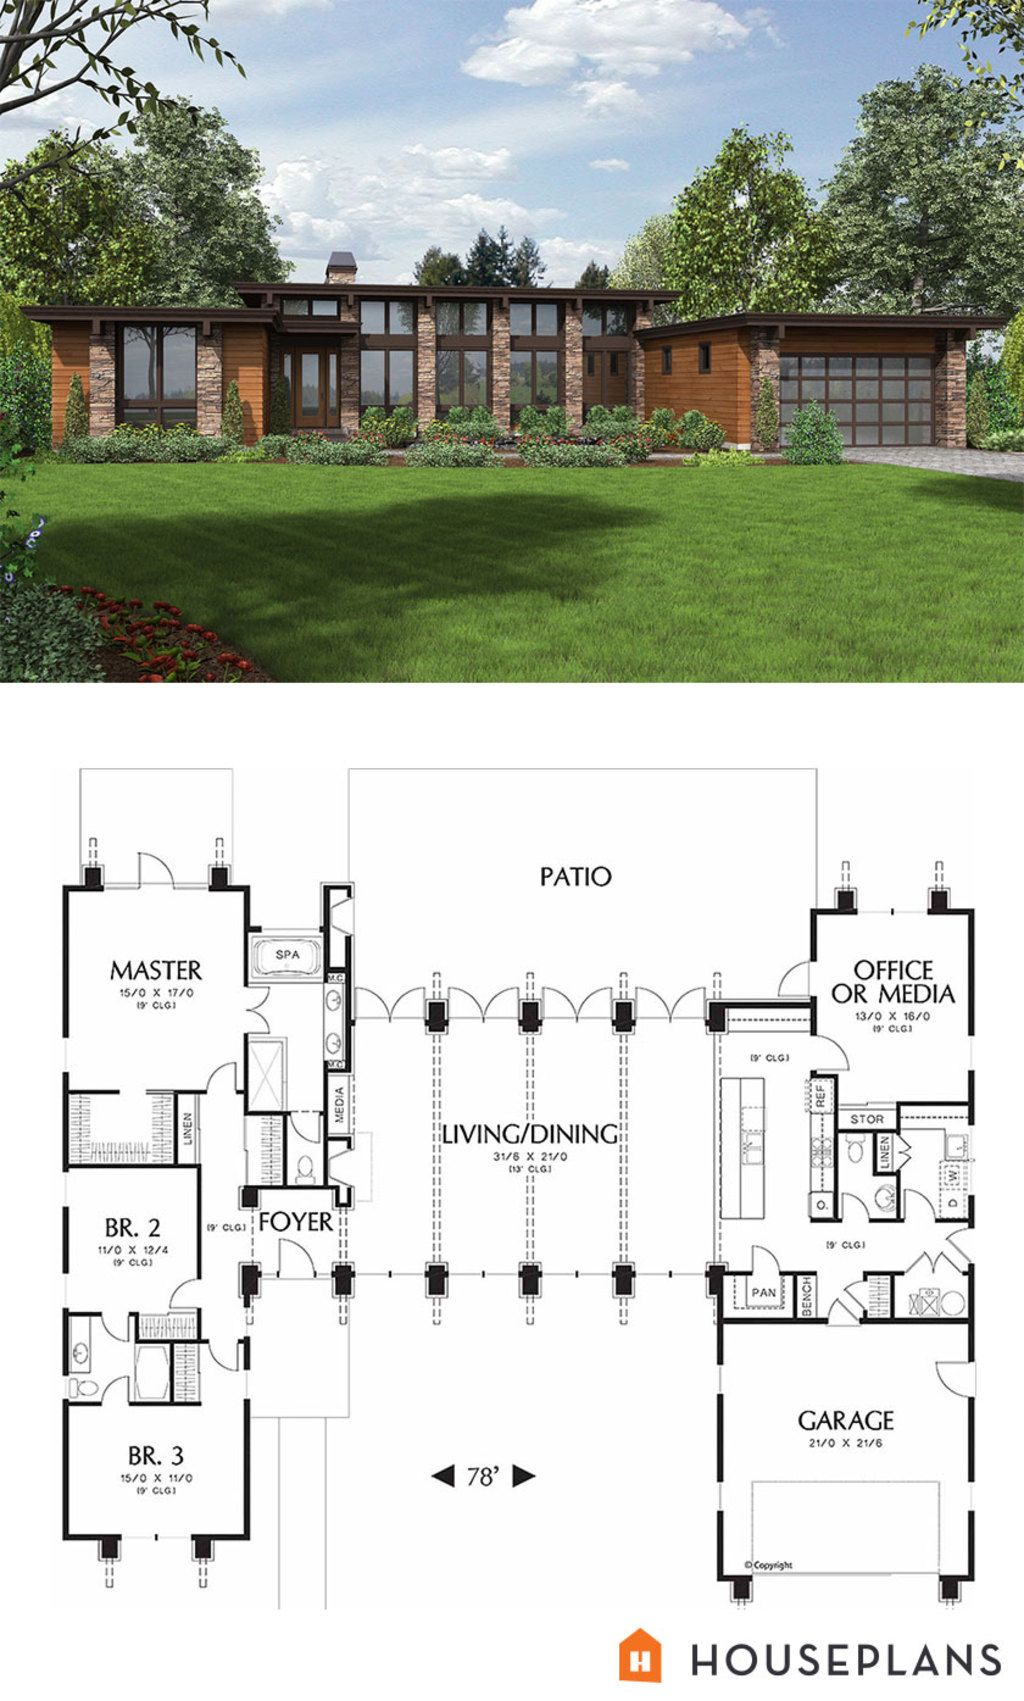 Plan 48 476 www houseplans com modern style house plan 3 beds 2 5 baths 2557 sq ft main floor plan warm modern house floor plan and elevation